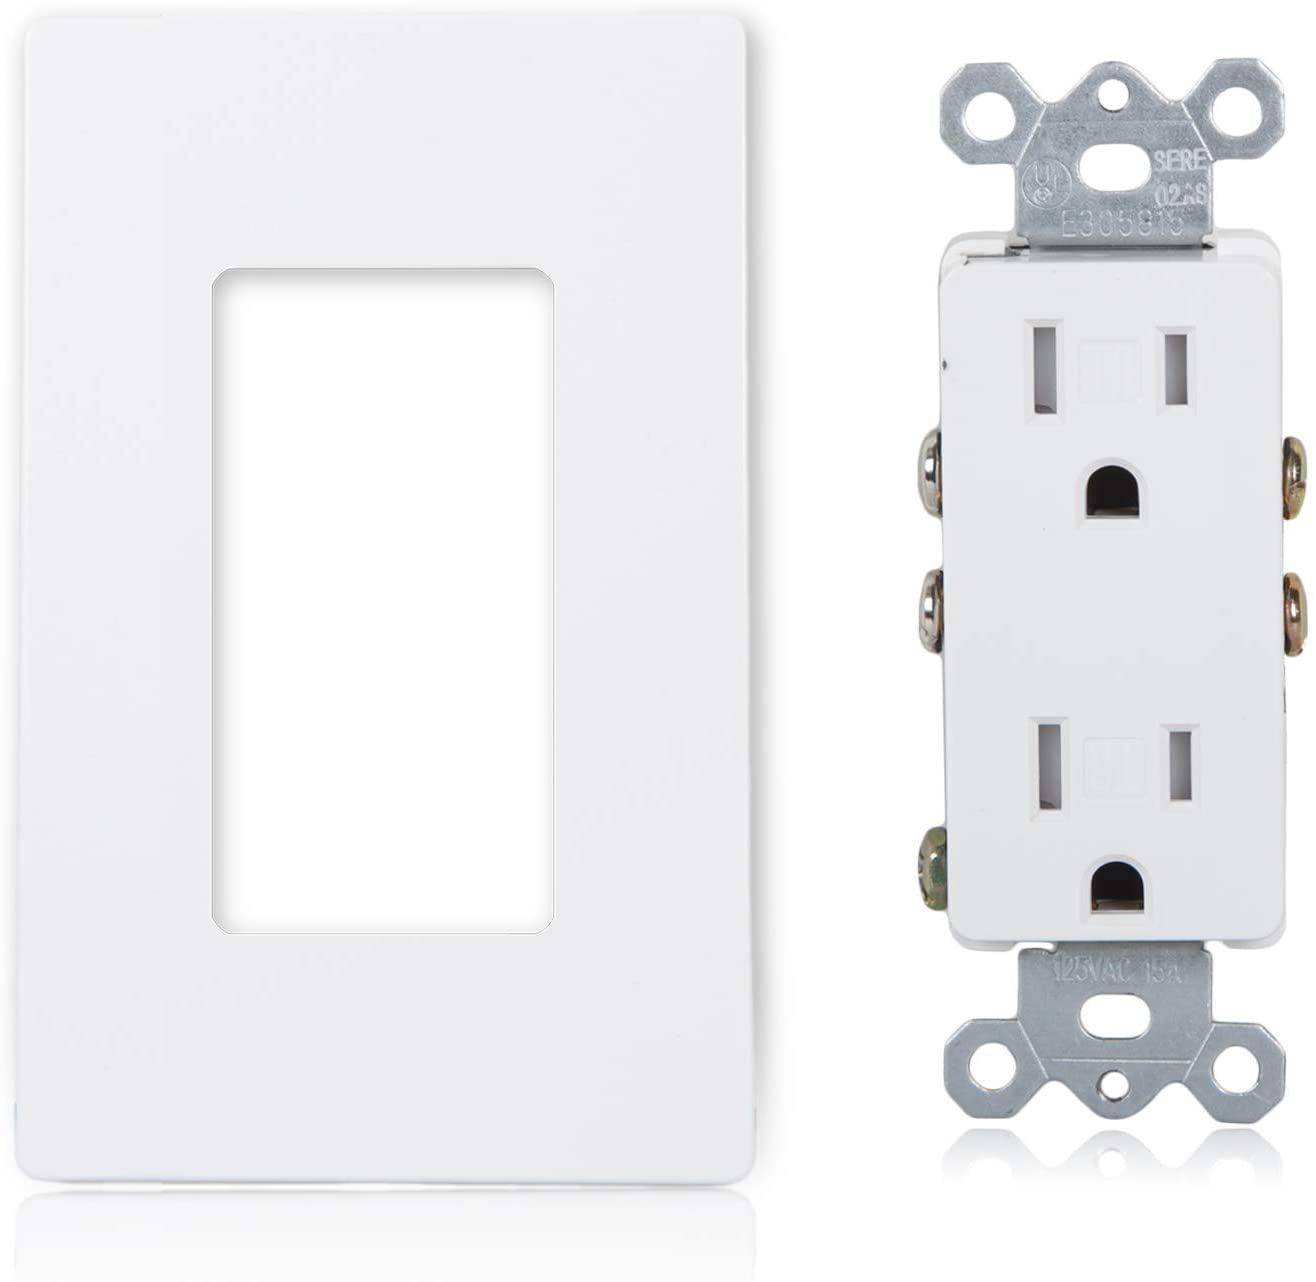 Maxxima Tamper Resistant Electrical Wall Outlet, with Screwless Wall Plates (Pack of 10)